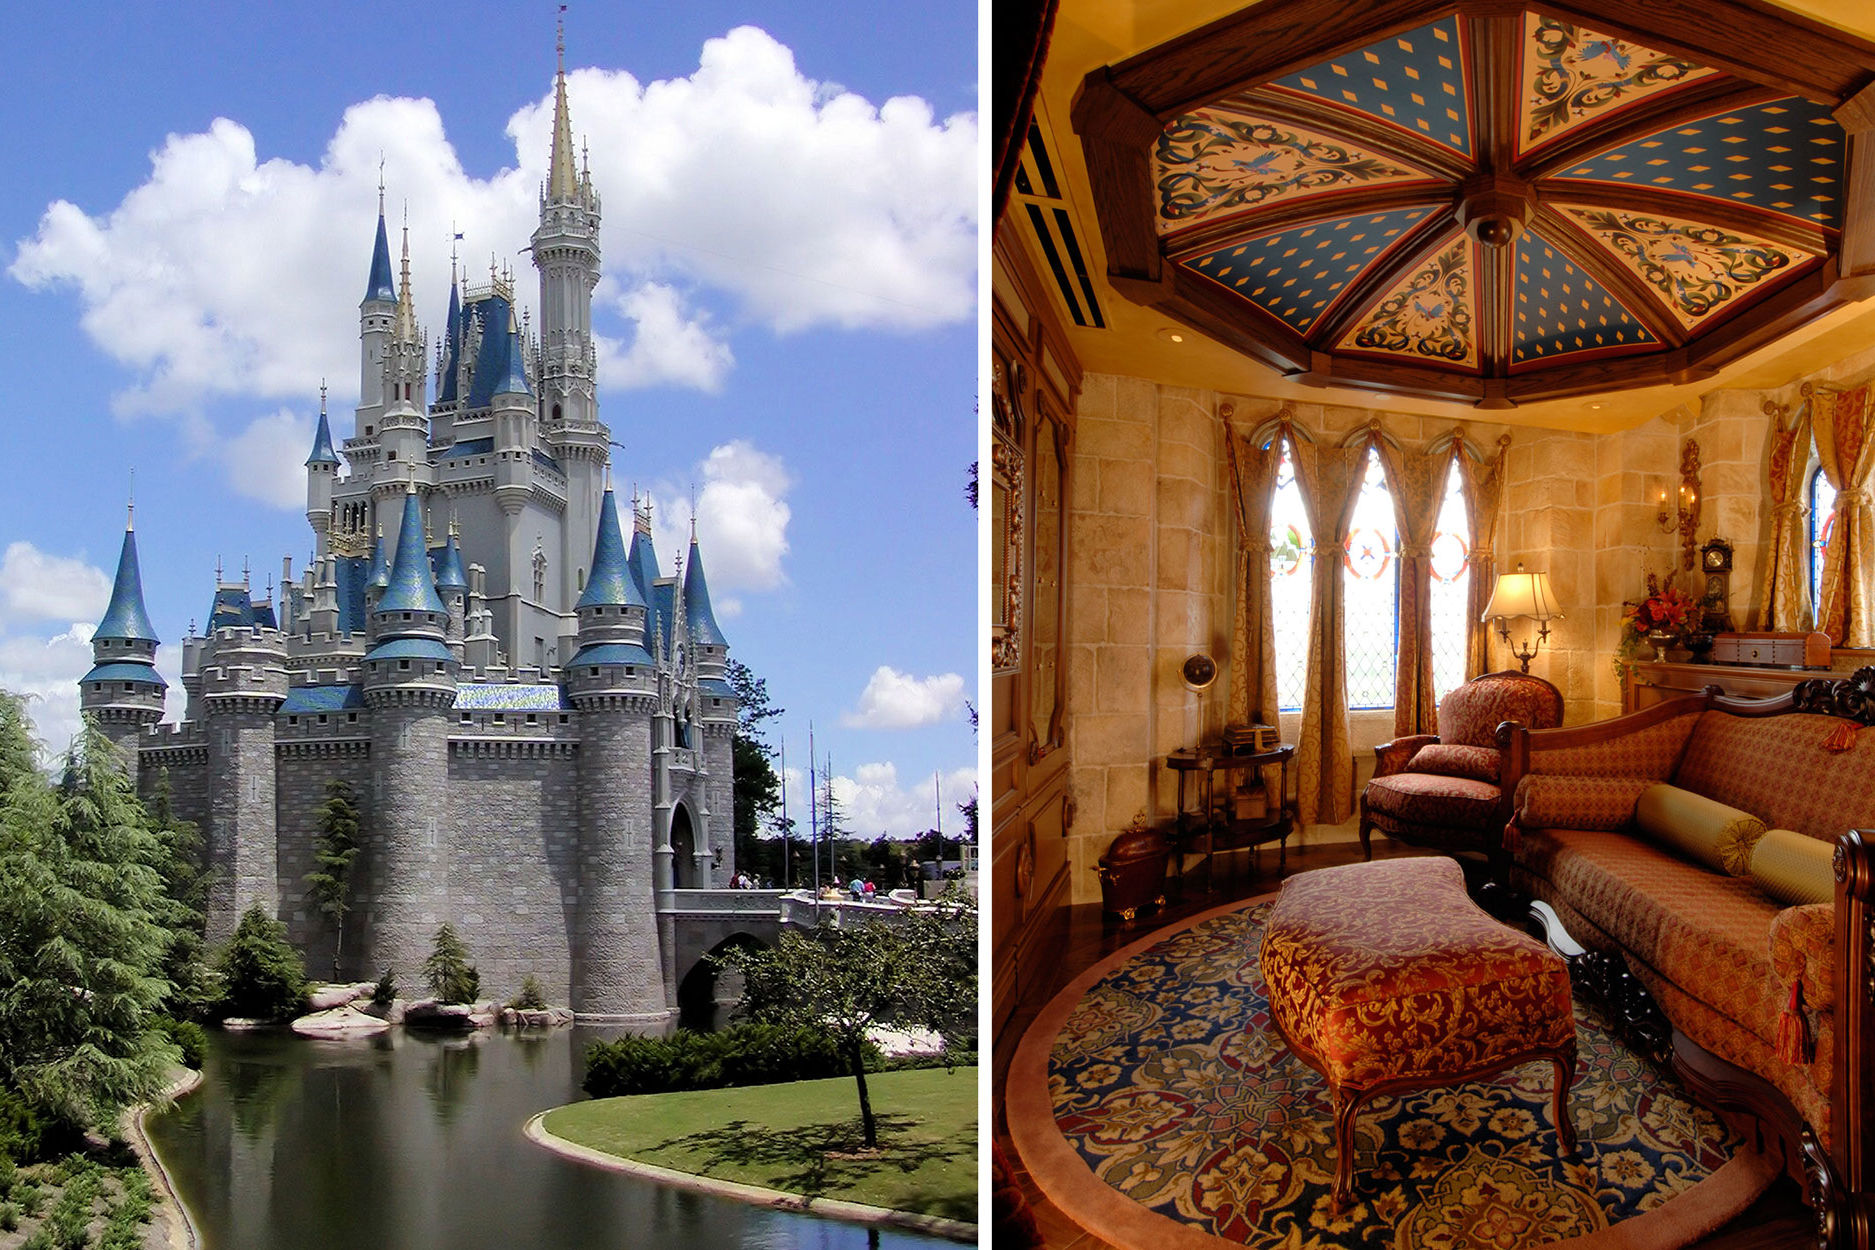 Did You Know There's a Secret Hotel Suite Inside Disney's Cinderella Castle?